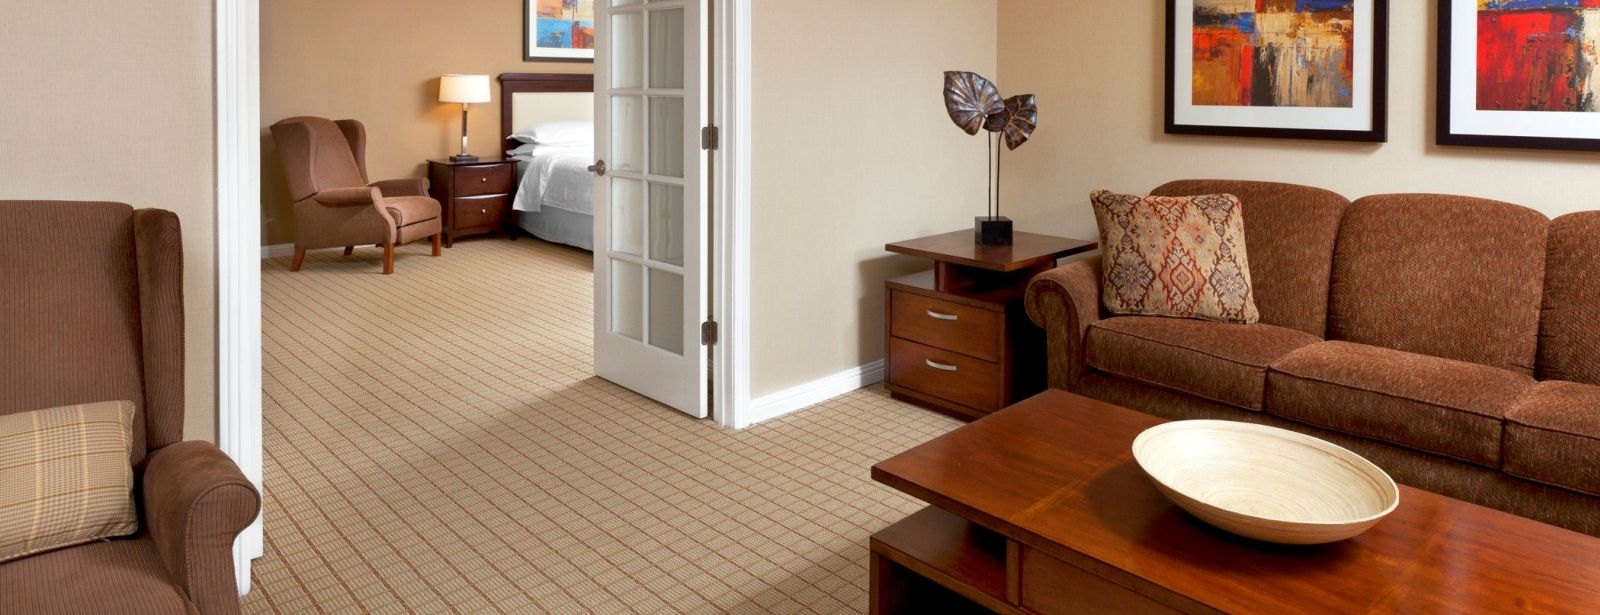 Executive Suite | Sheraton Sunnyvale Hotel